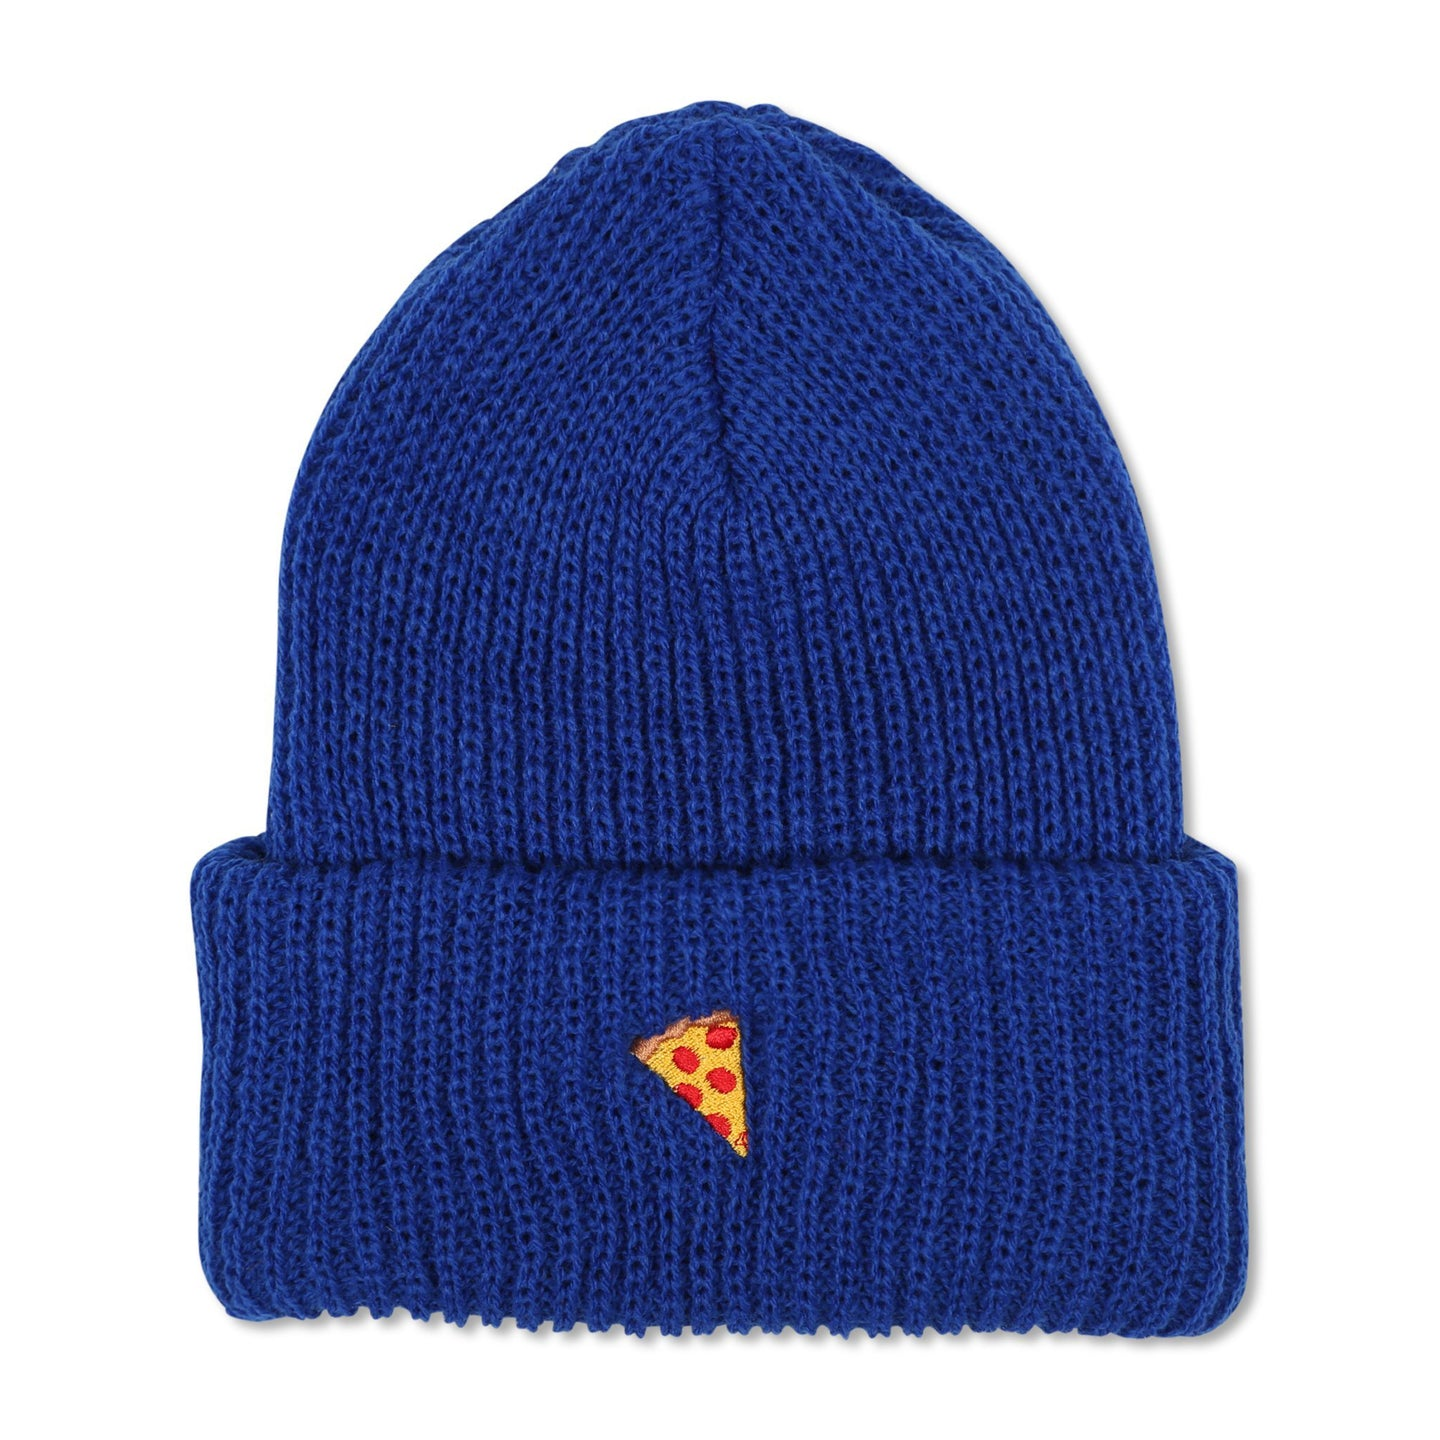 Pizza Skateboards - Emoji Beanie Blue